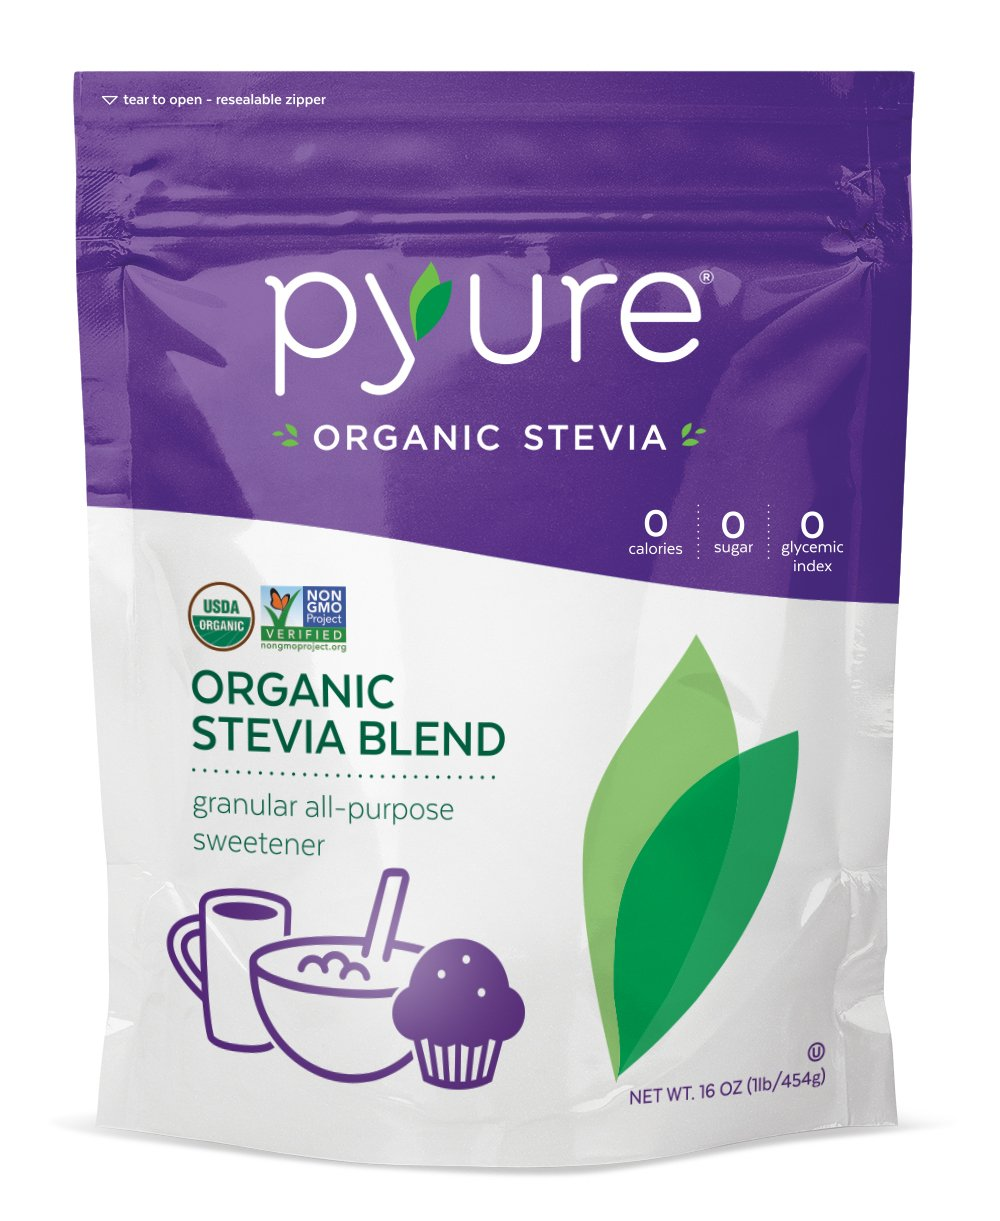 Pyure Organic Stevia All-Purpose Blend Sweetener, 16 Ounce Pack of 6